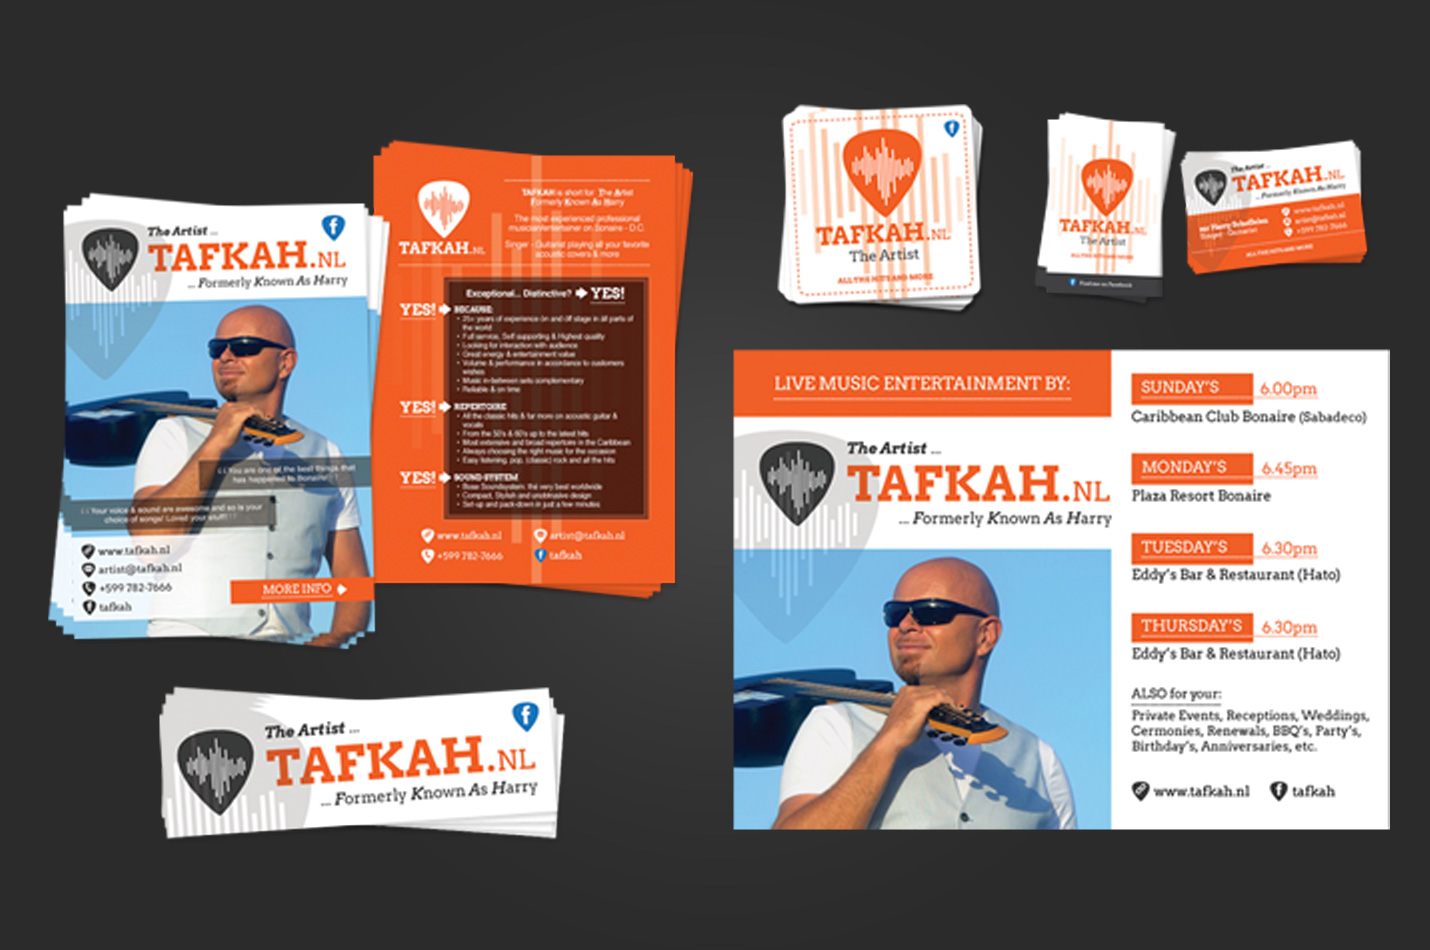 Tafkah.nl - graphic design by k-Dushi.com